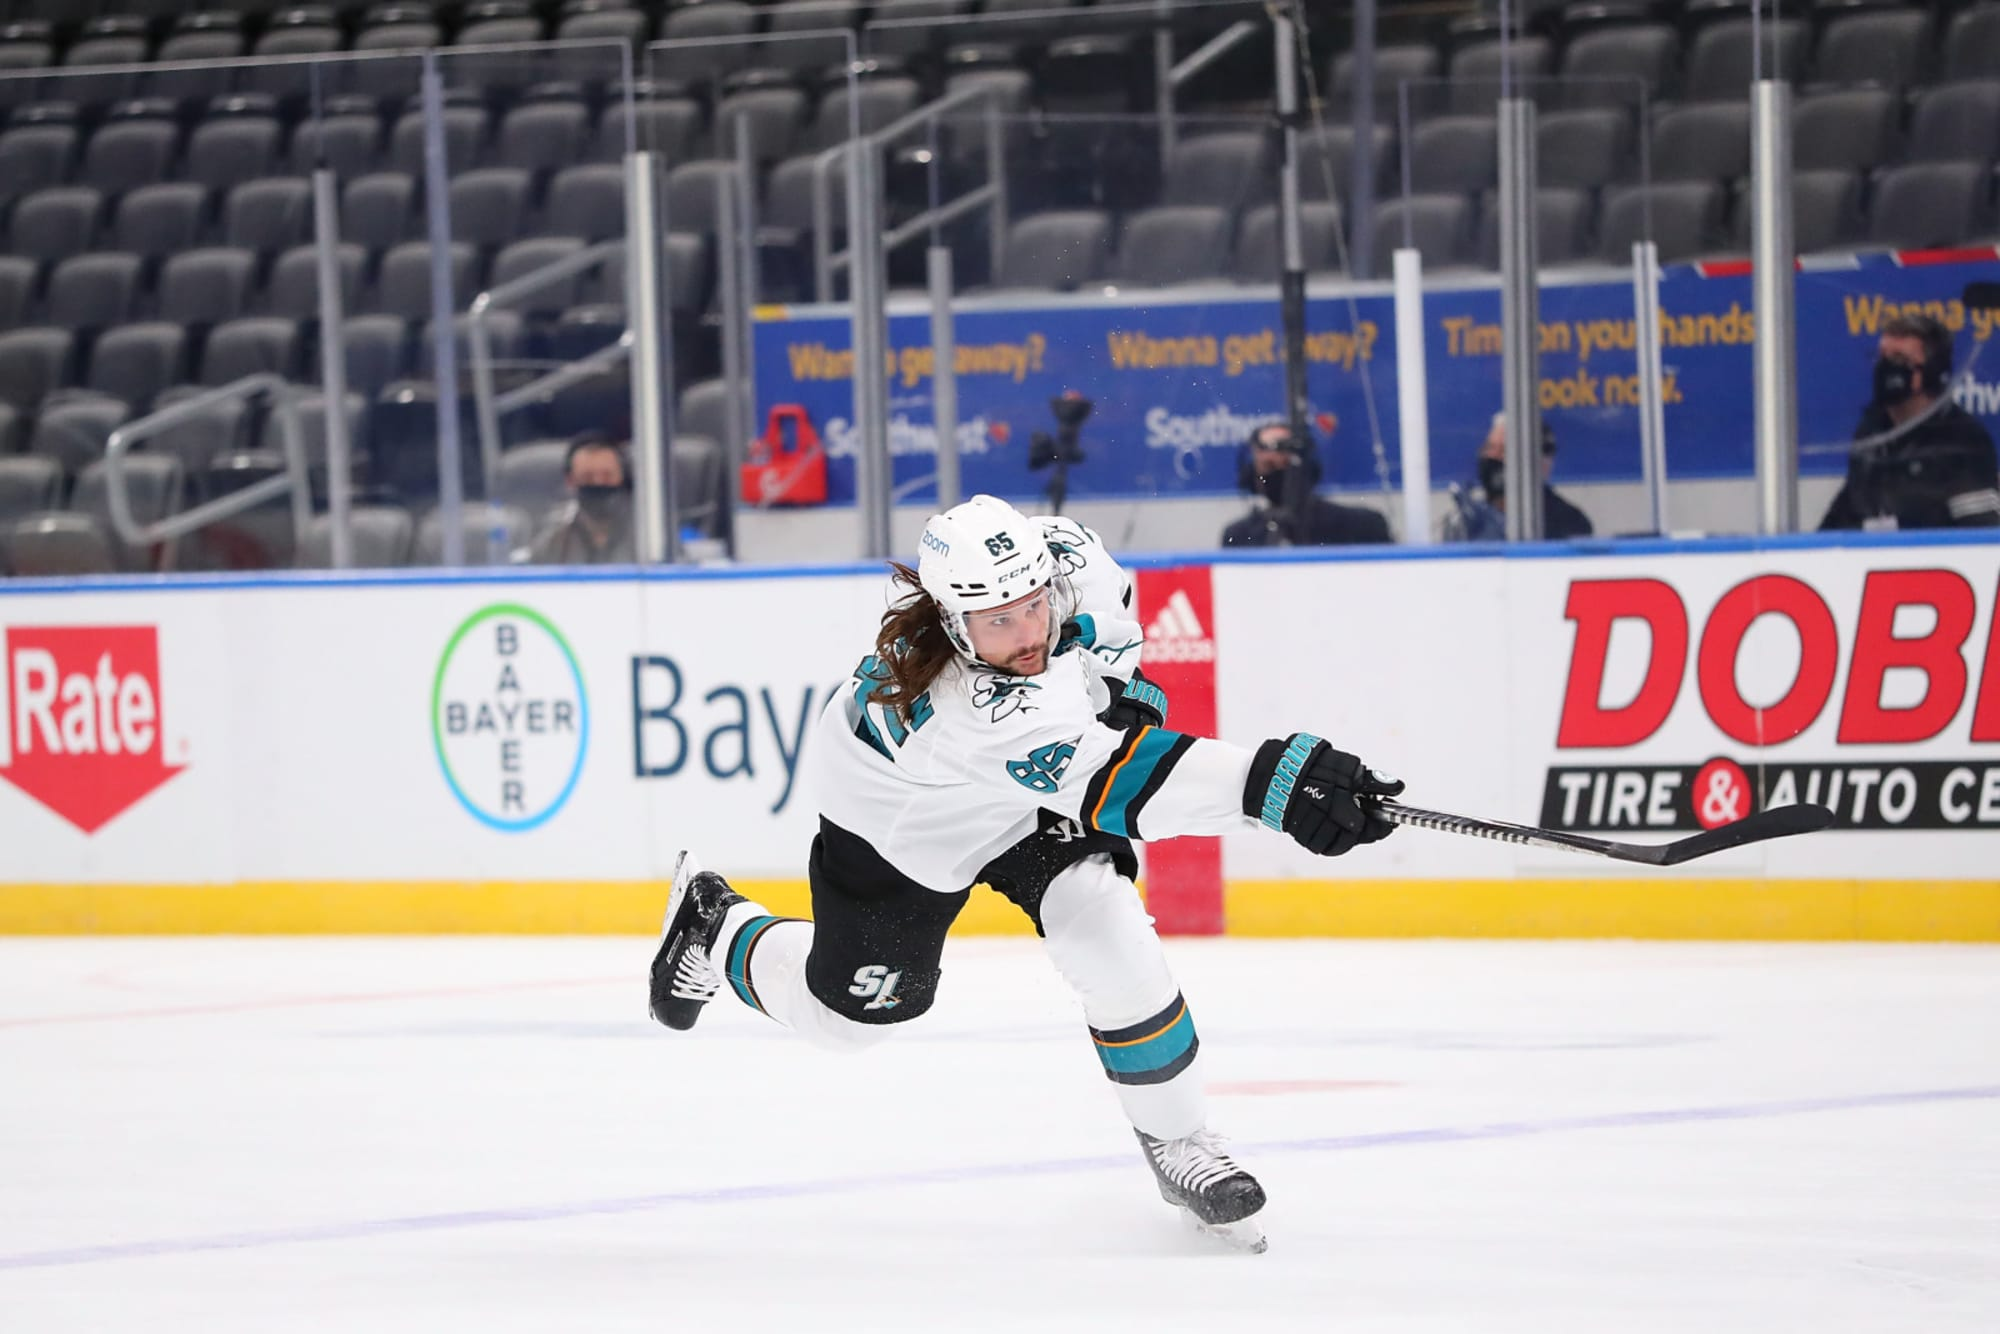 San Jose Sharks: How did Erik Karlsson earn a star without a point?